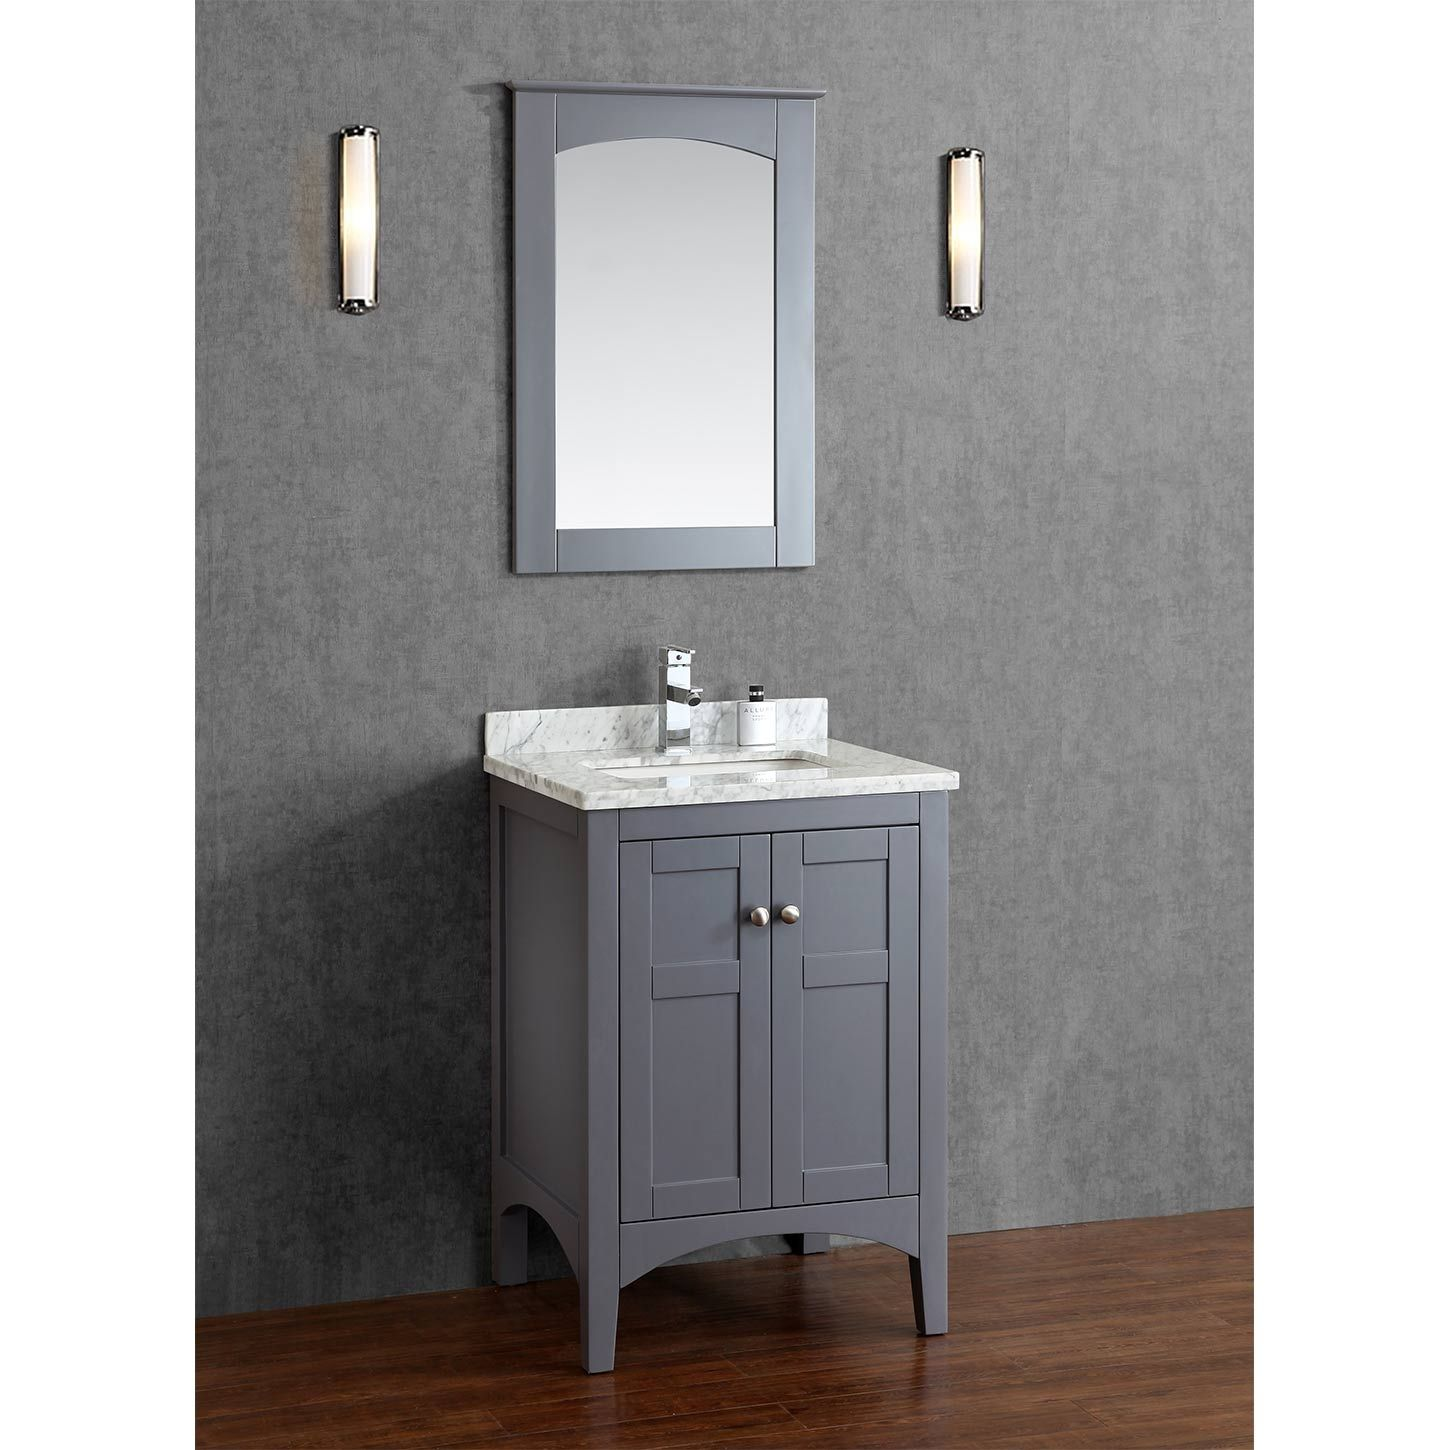 Merveilleux Bathroom Vanities Less Than 20 Inches Wide